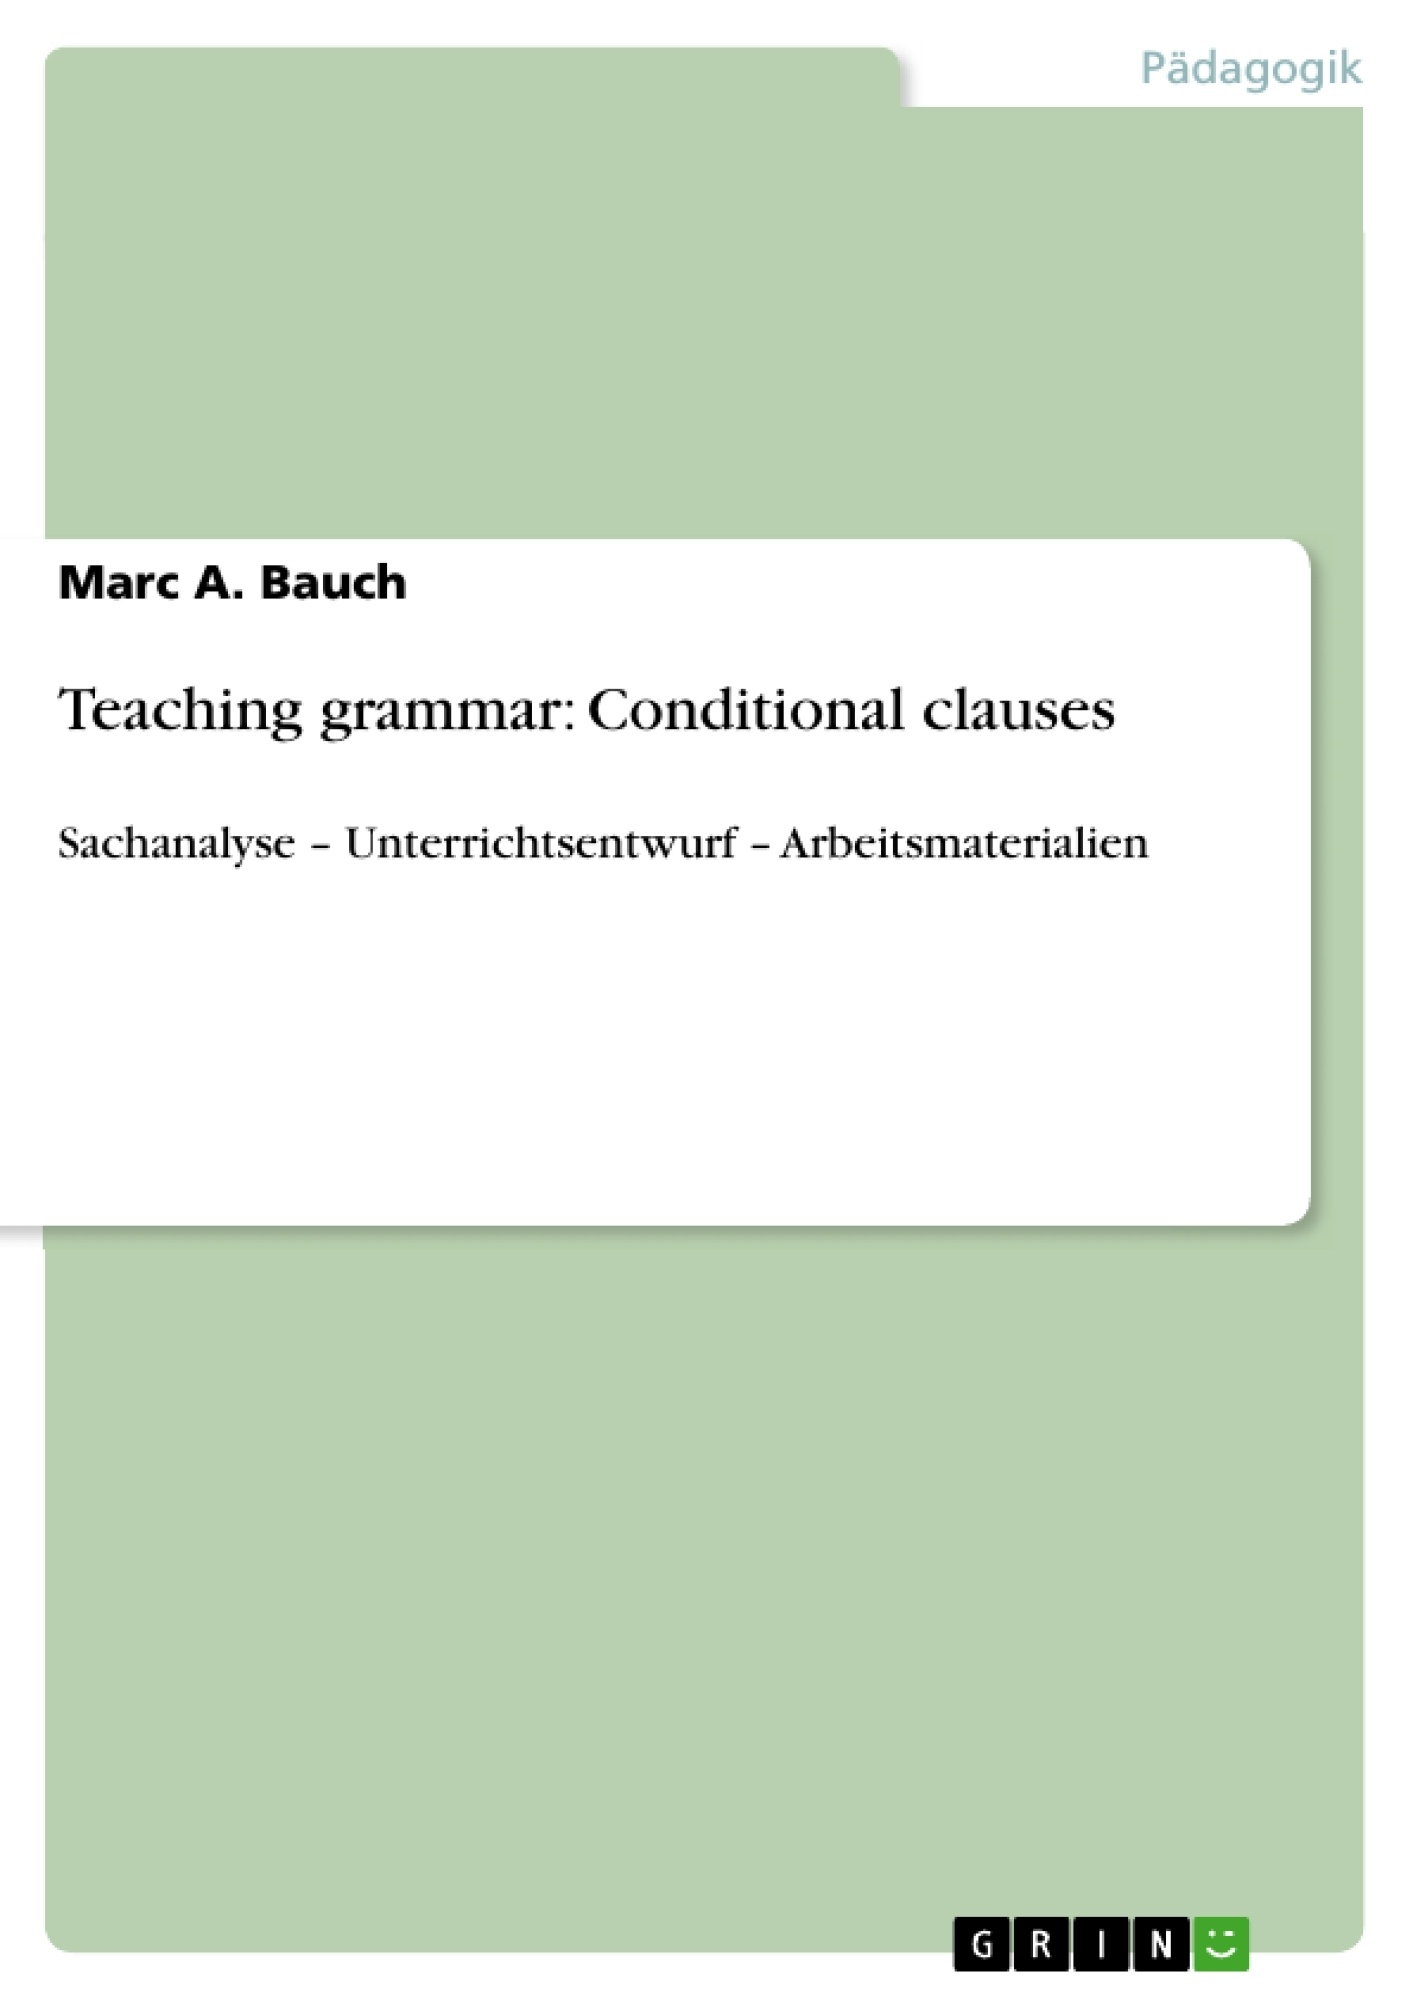 Teaching grammar: Conditional clauses | Masterarbeit, Hausarbeit ...